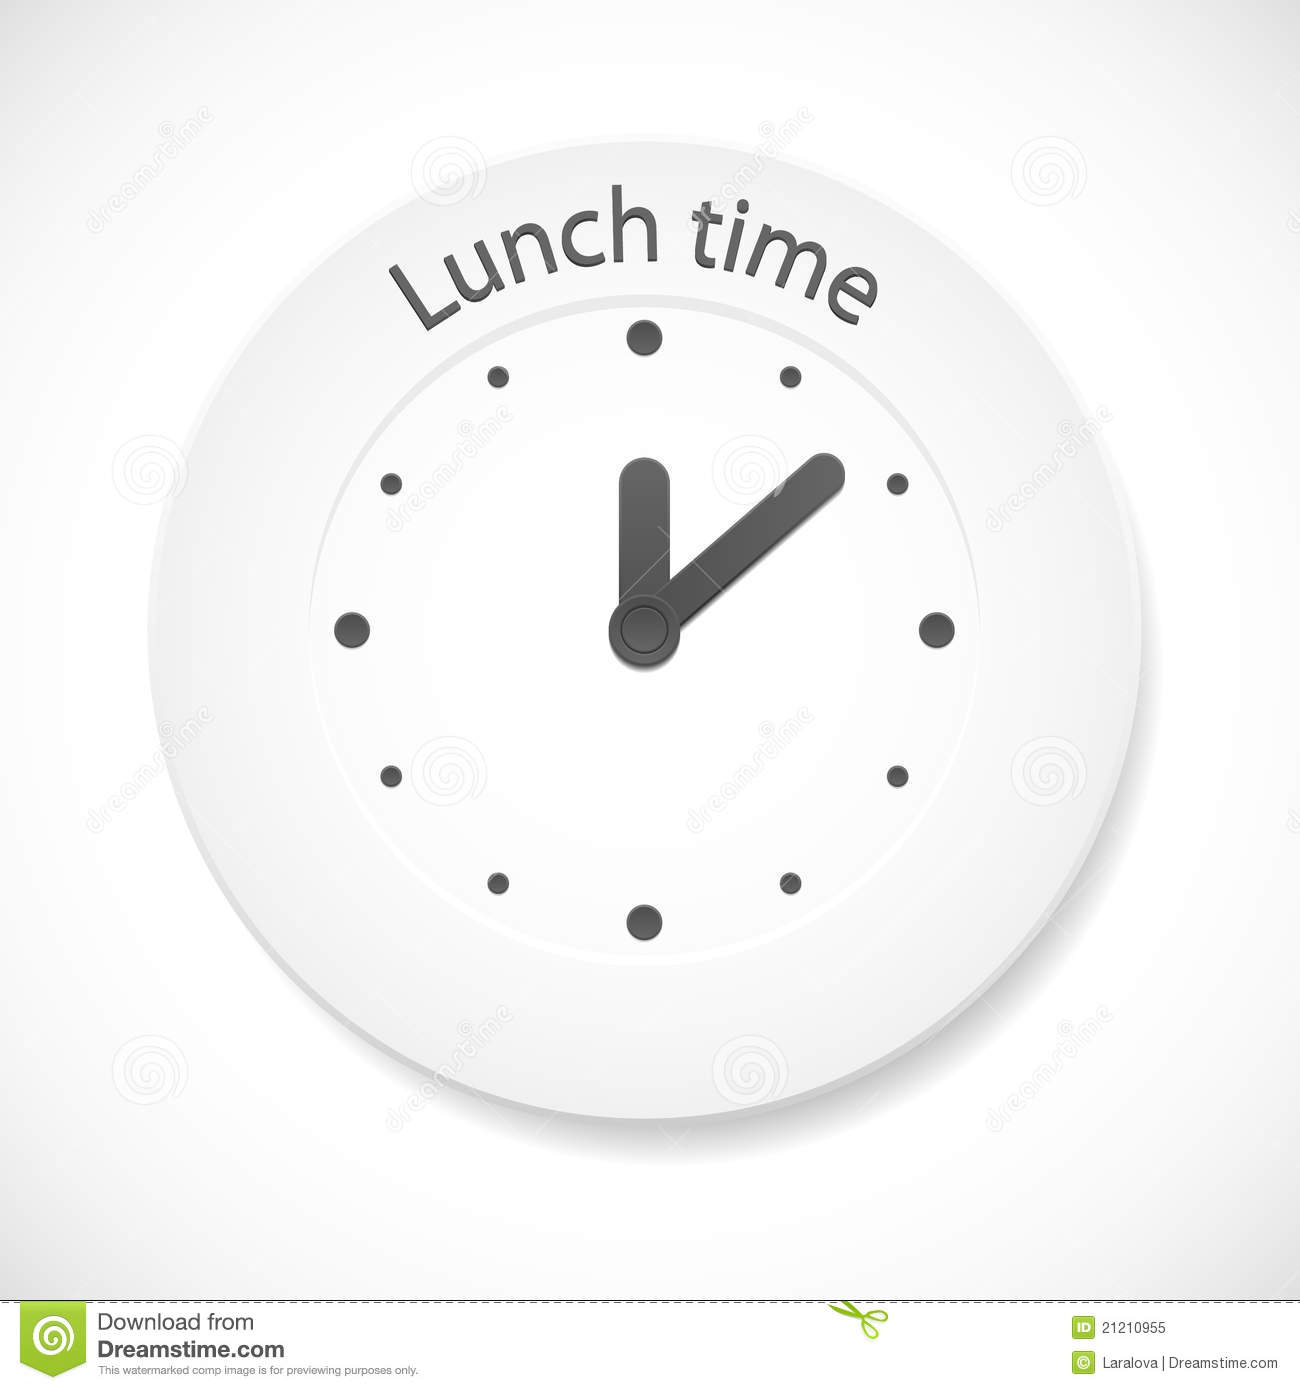 Lunch time clock stock vector. Image of healthy, graphic